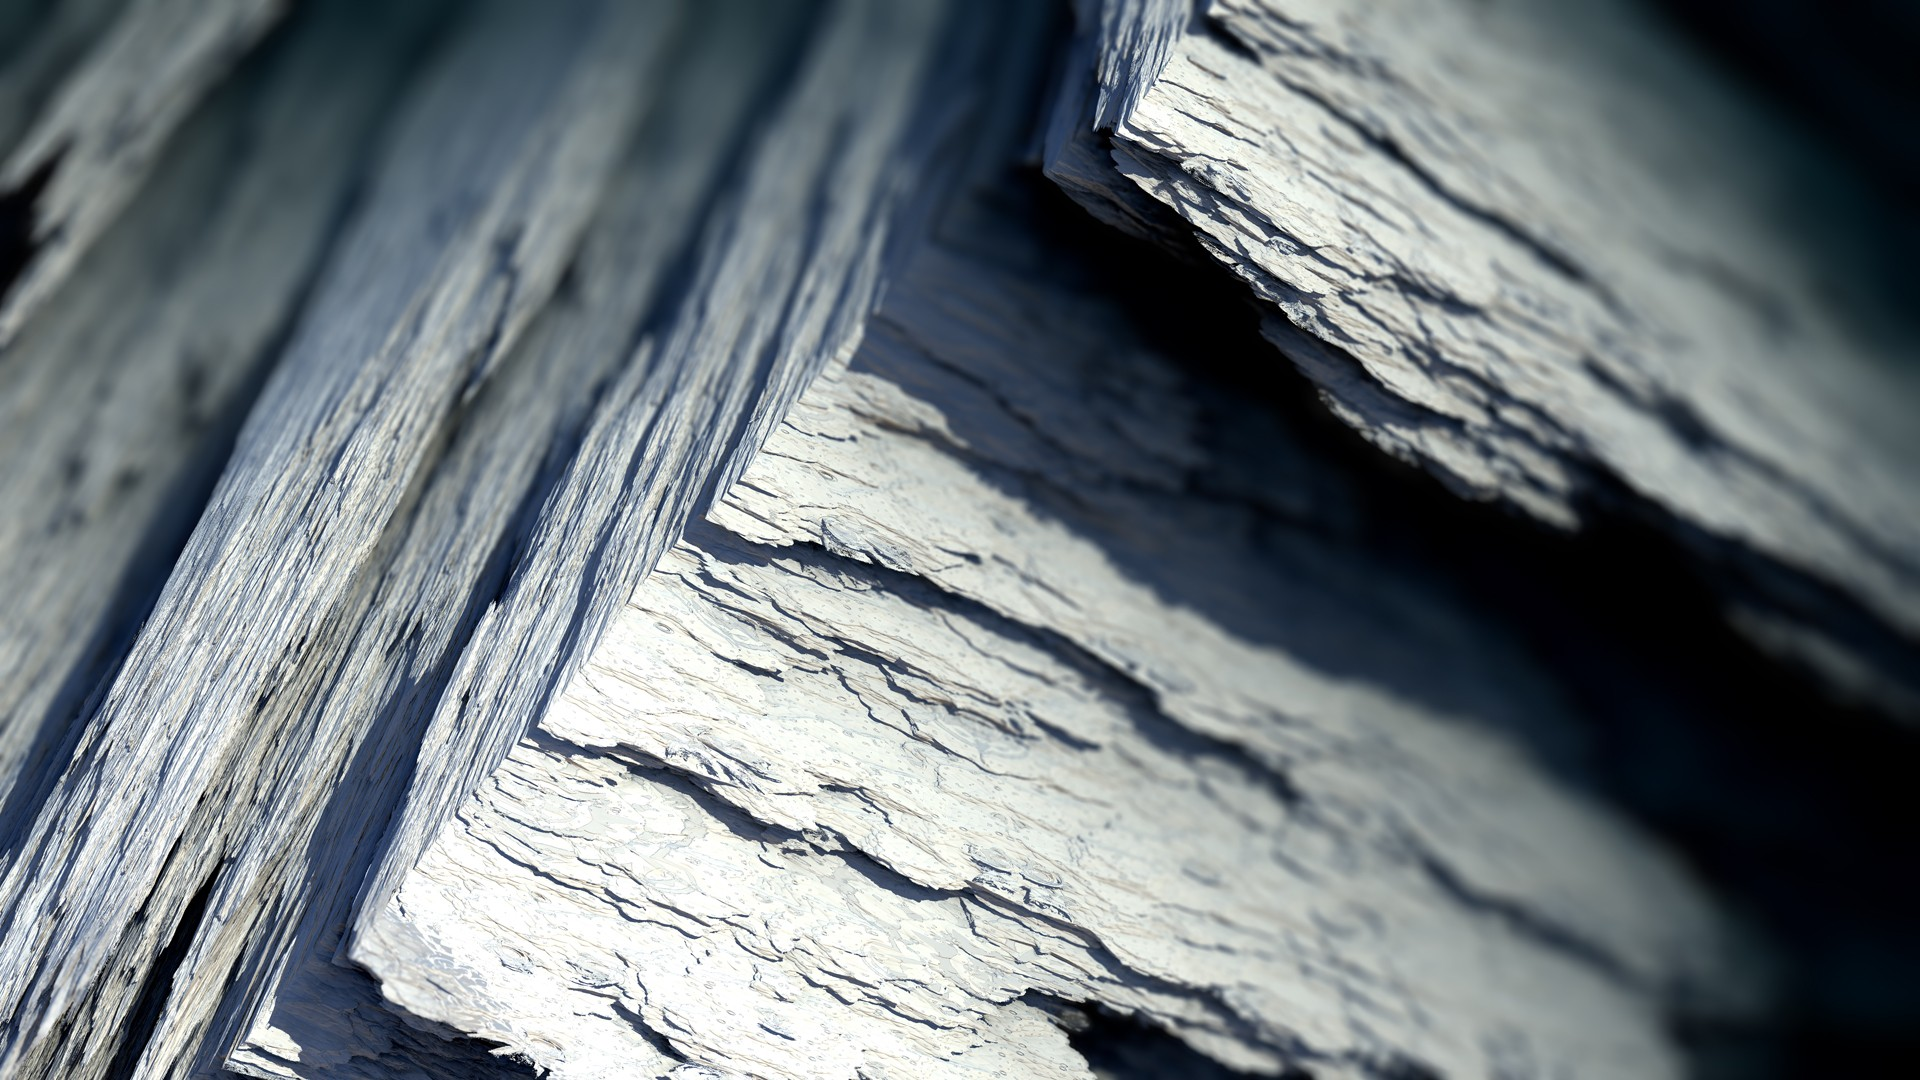 12 wonderful hd mineral wallpapers for Mineral wall